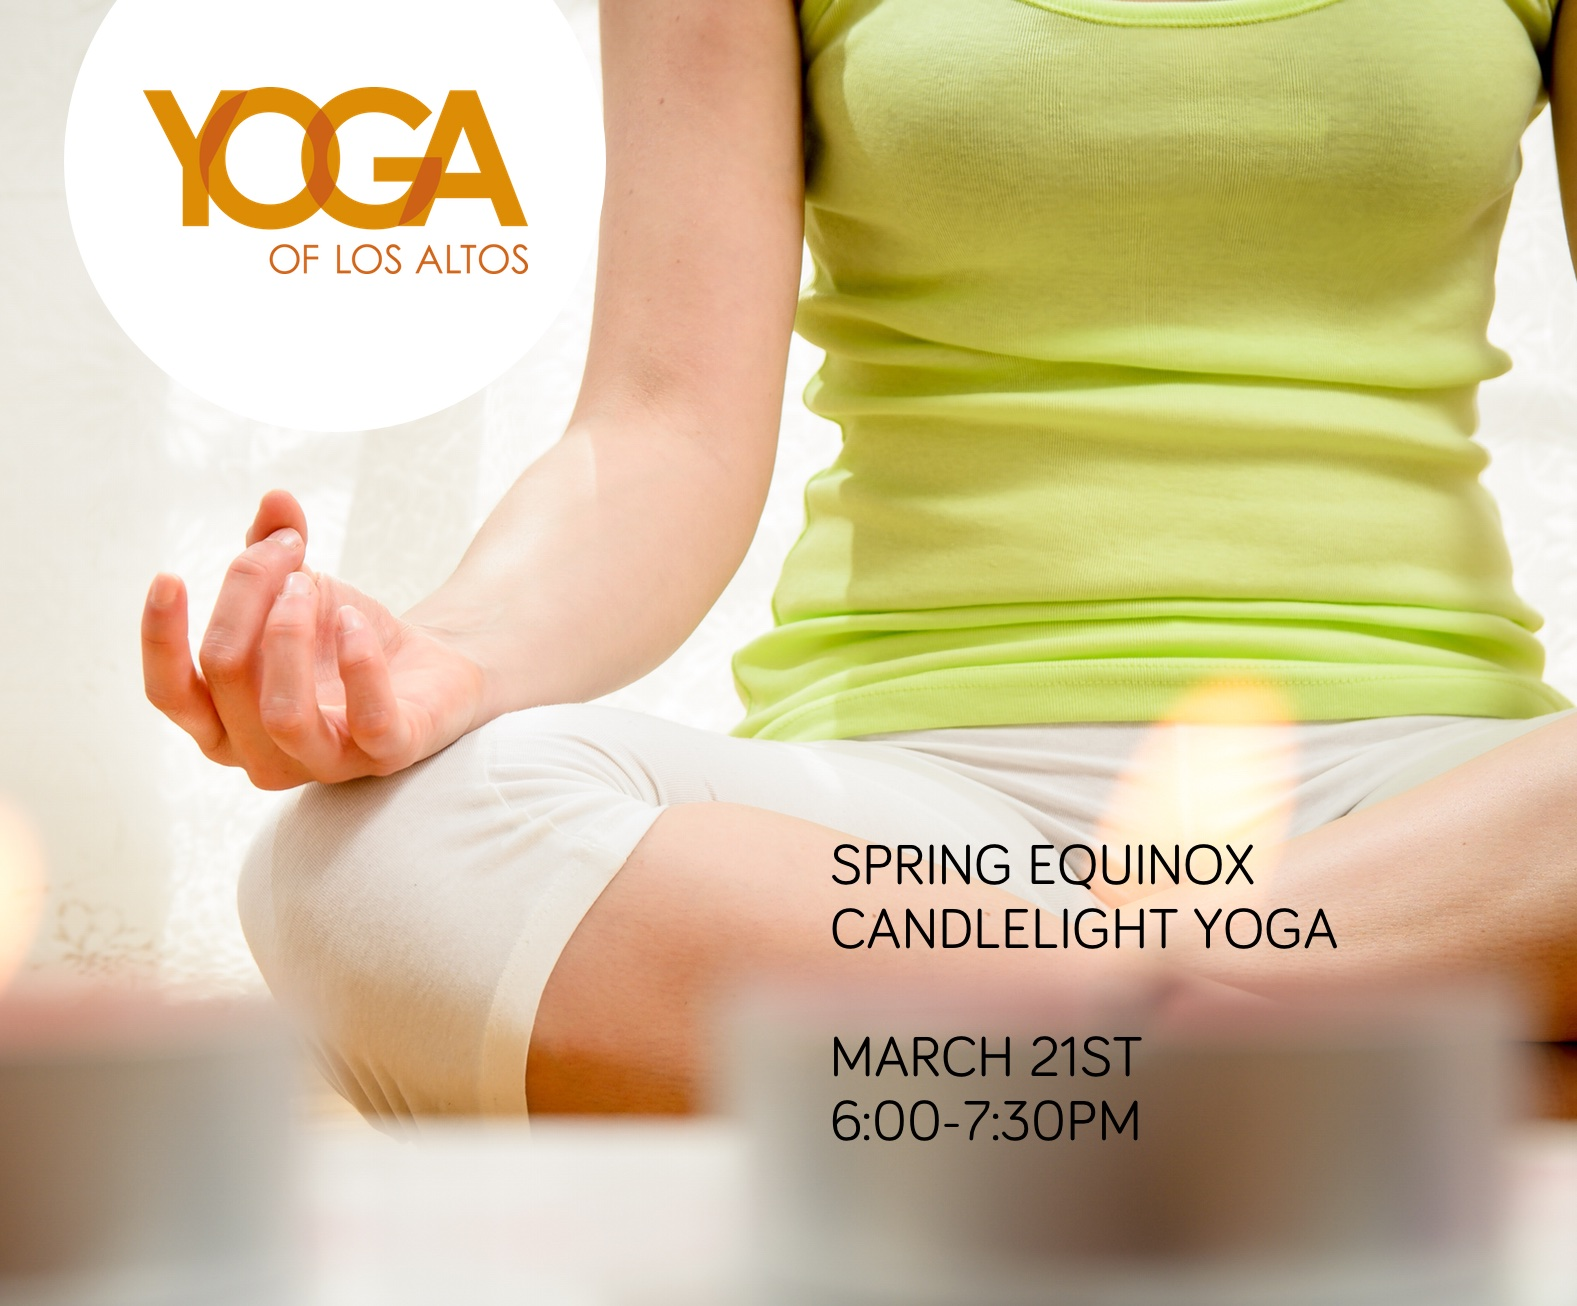 Yoga of Los Altos - Spring equinox candlelight yoga workshop with Rebecca Snowball